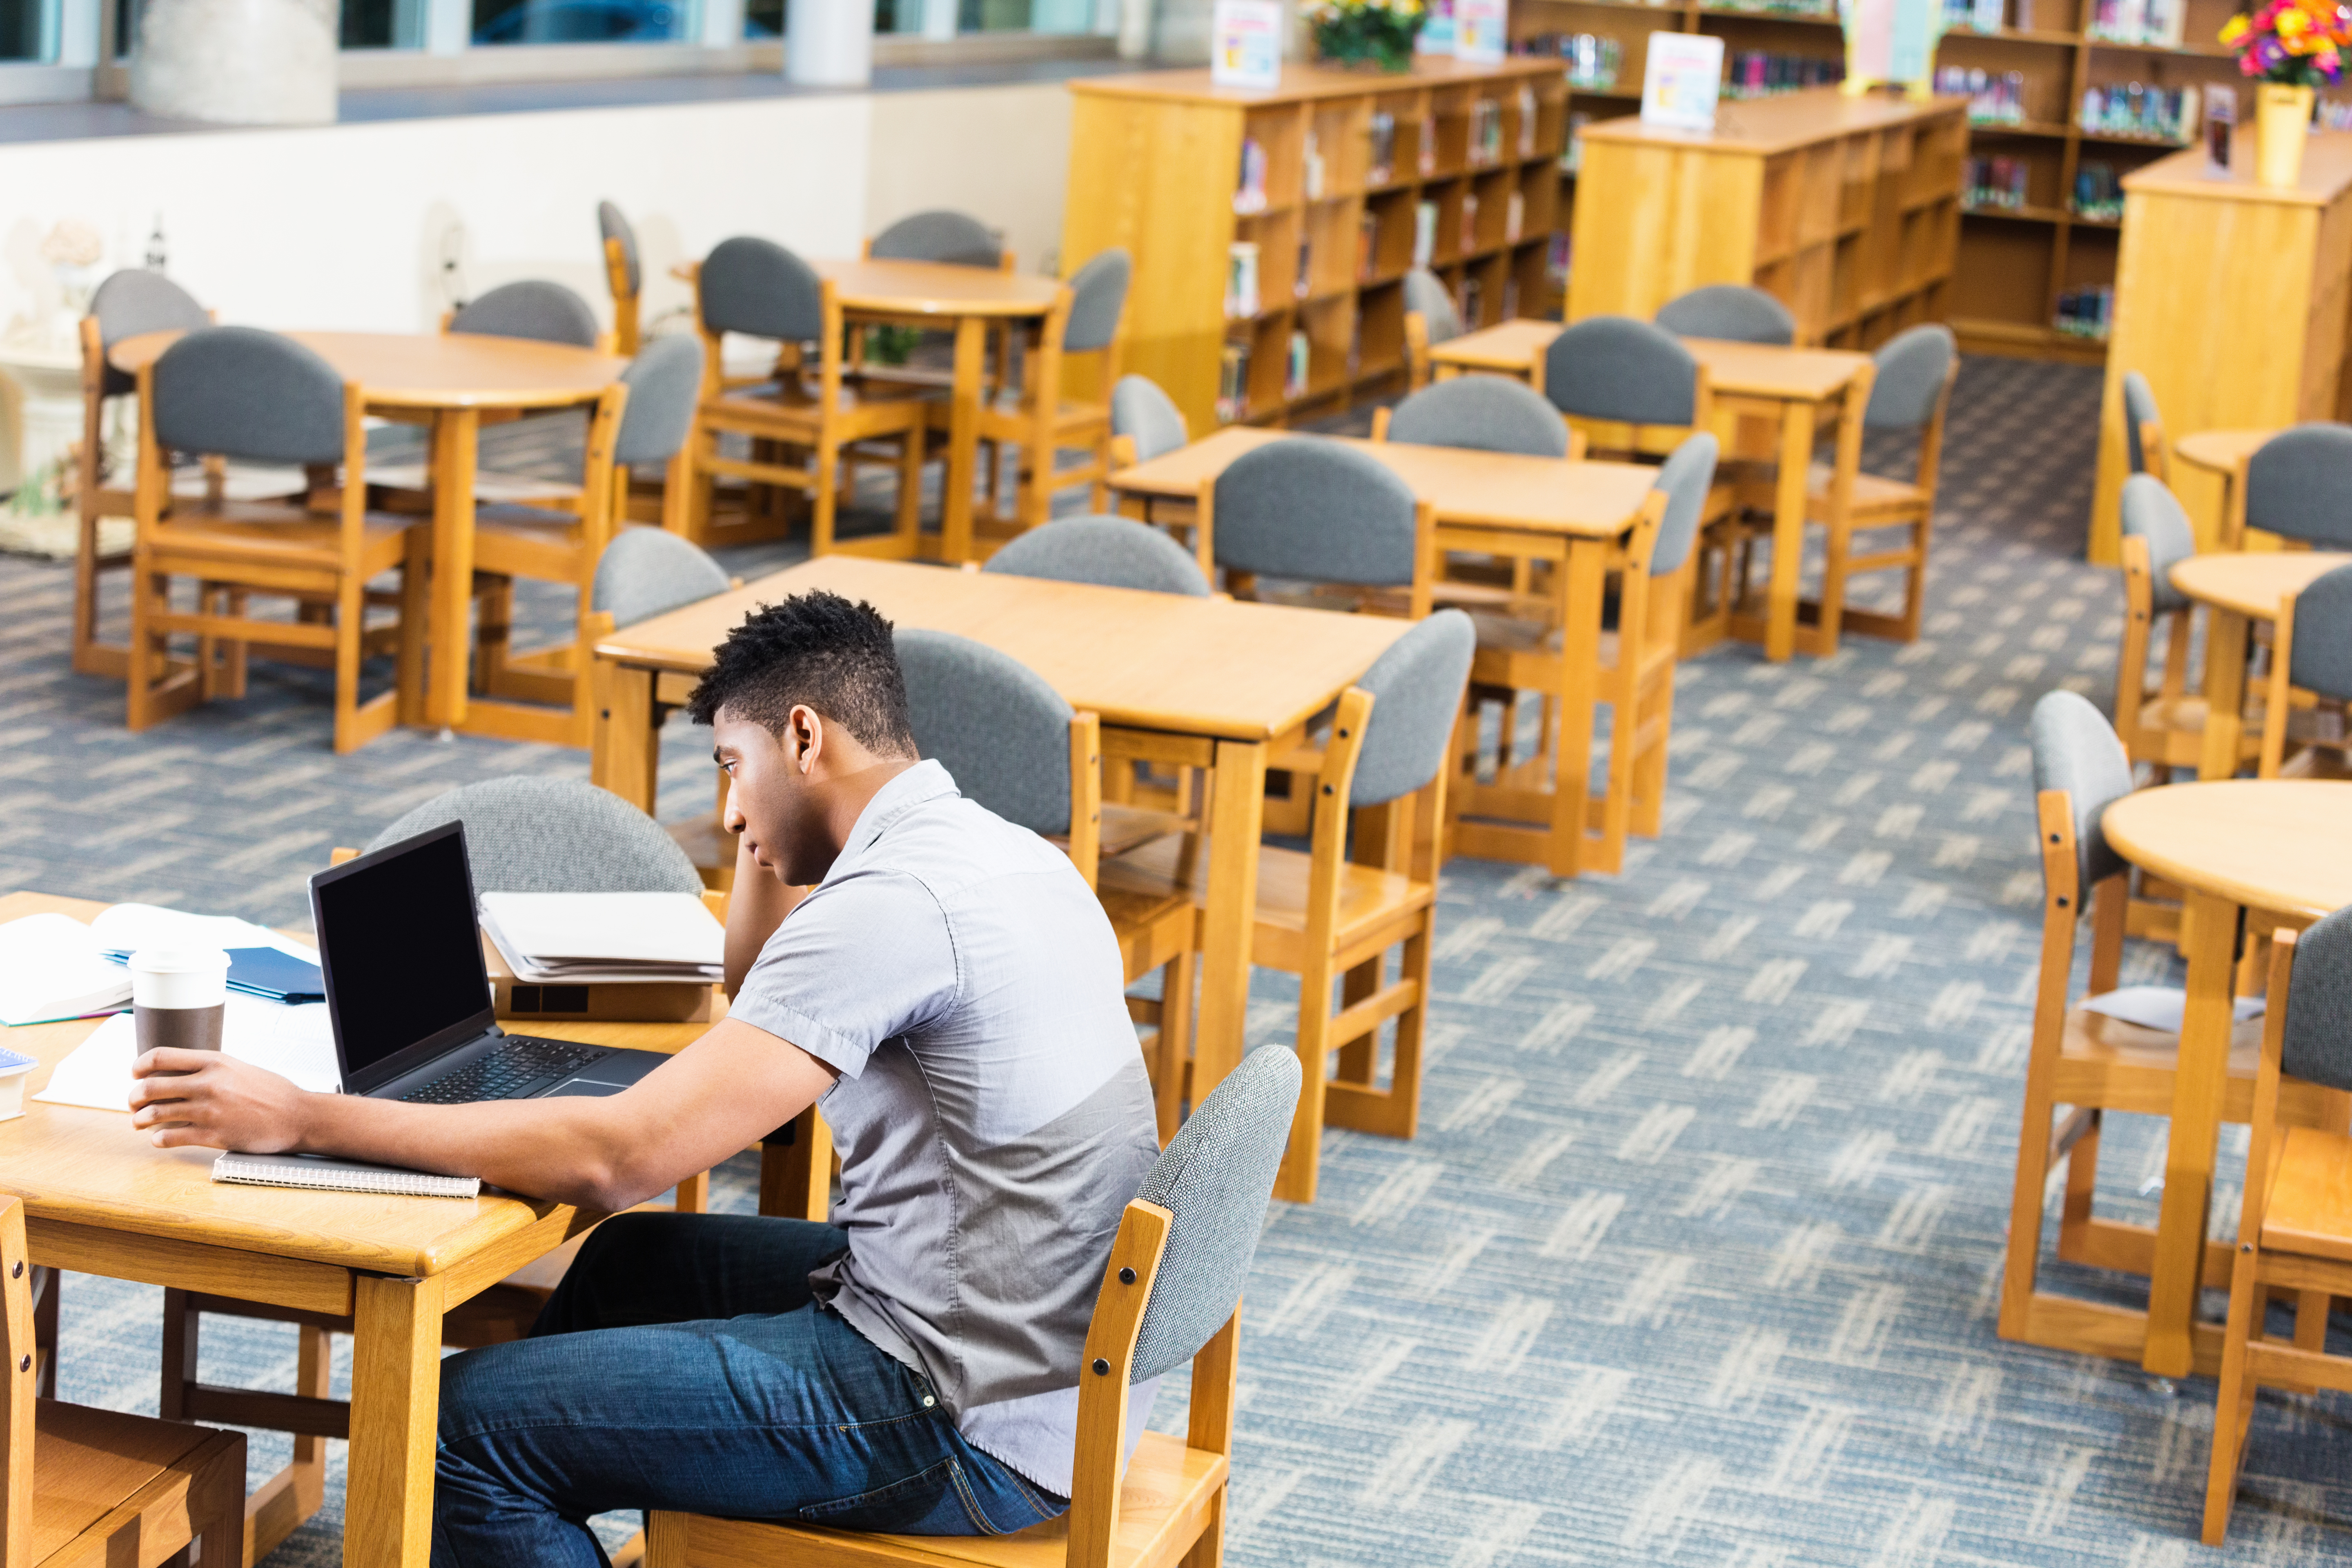 African American high school or college student studying late